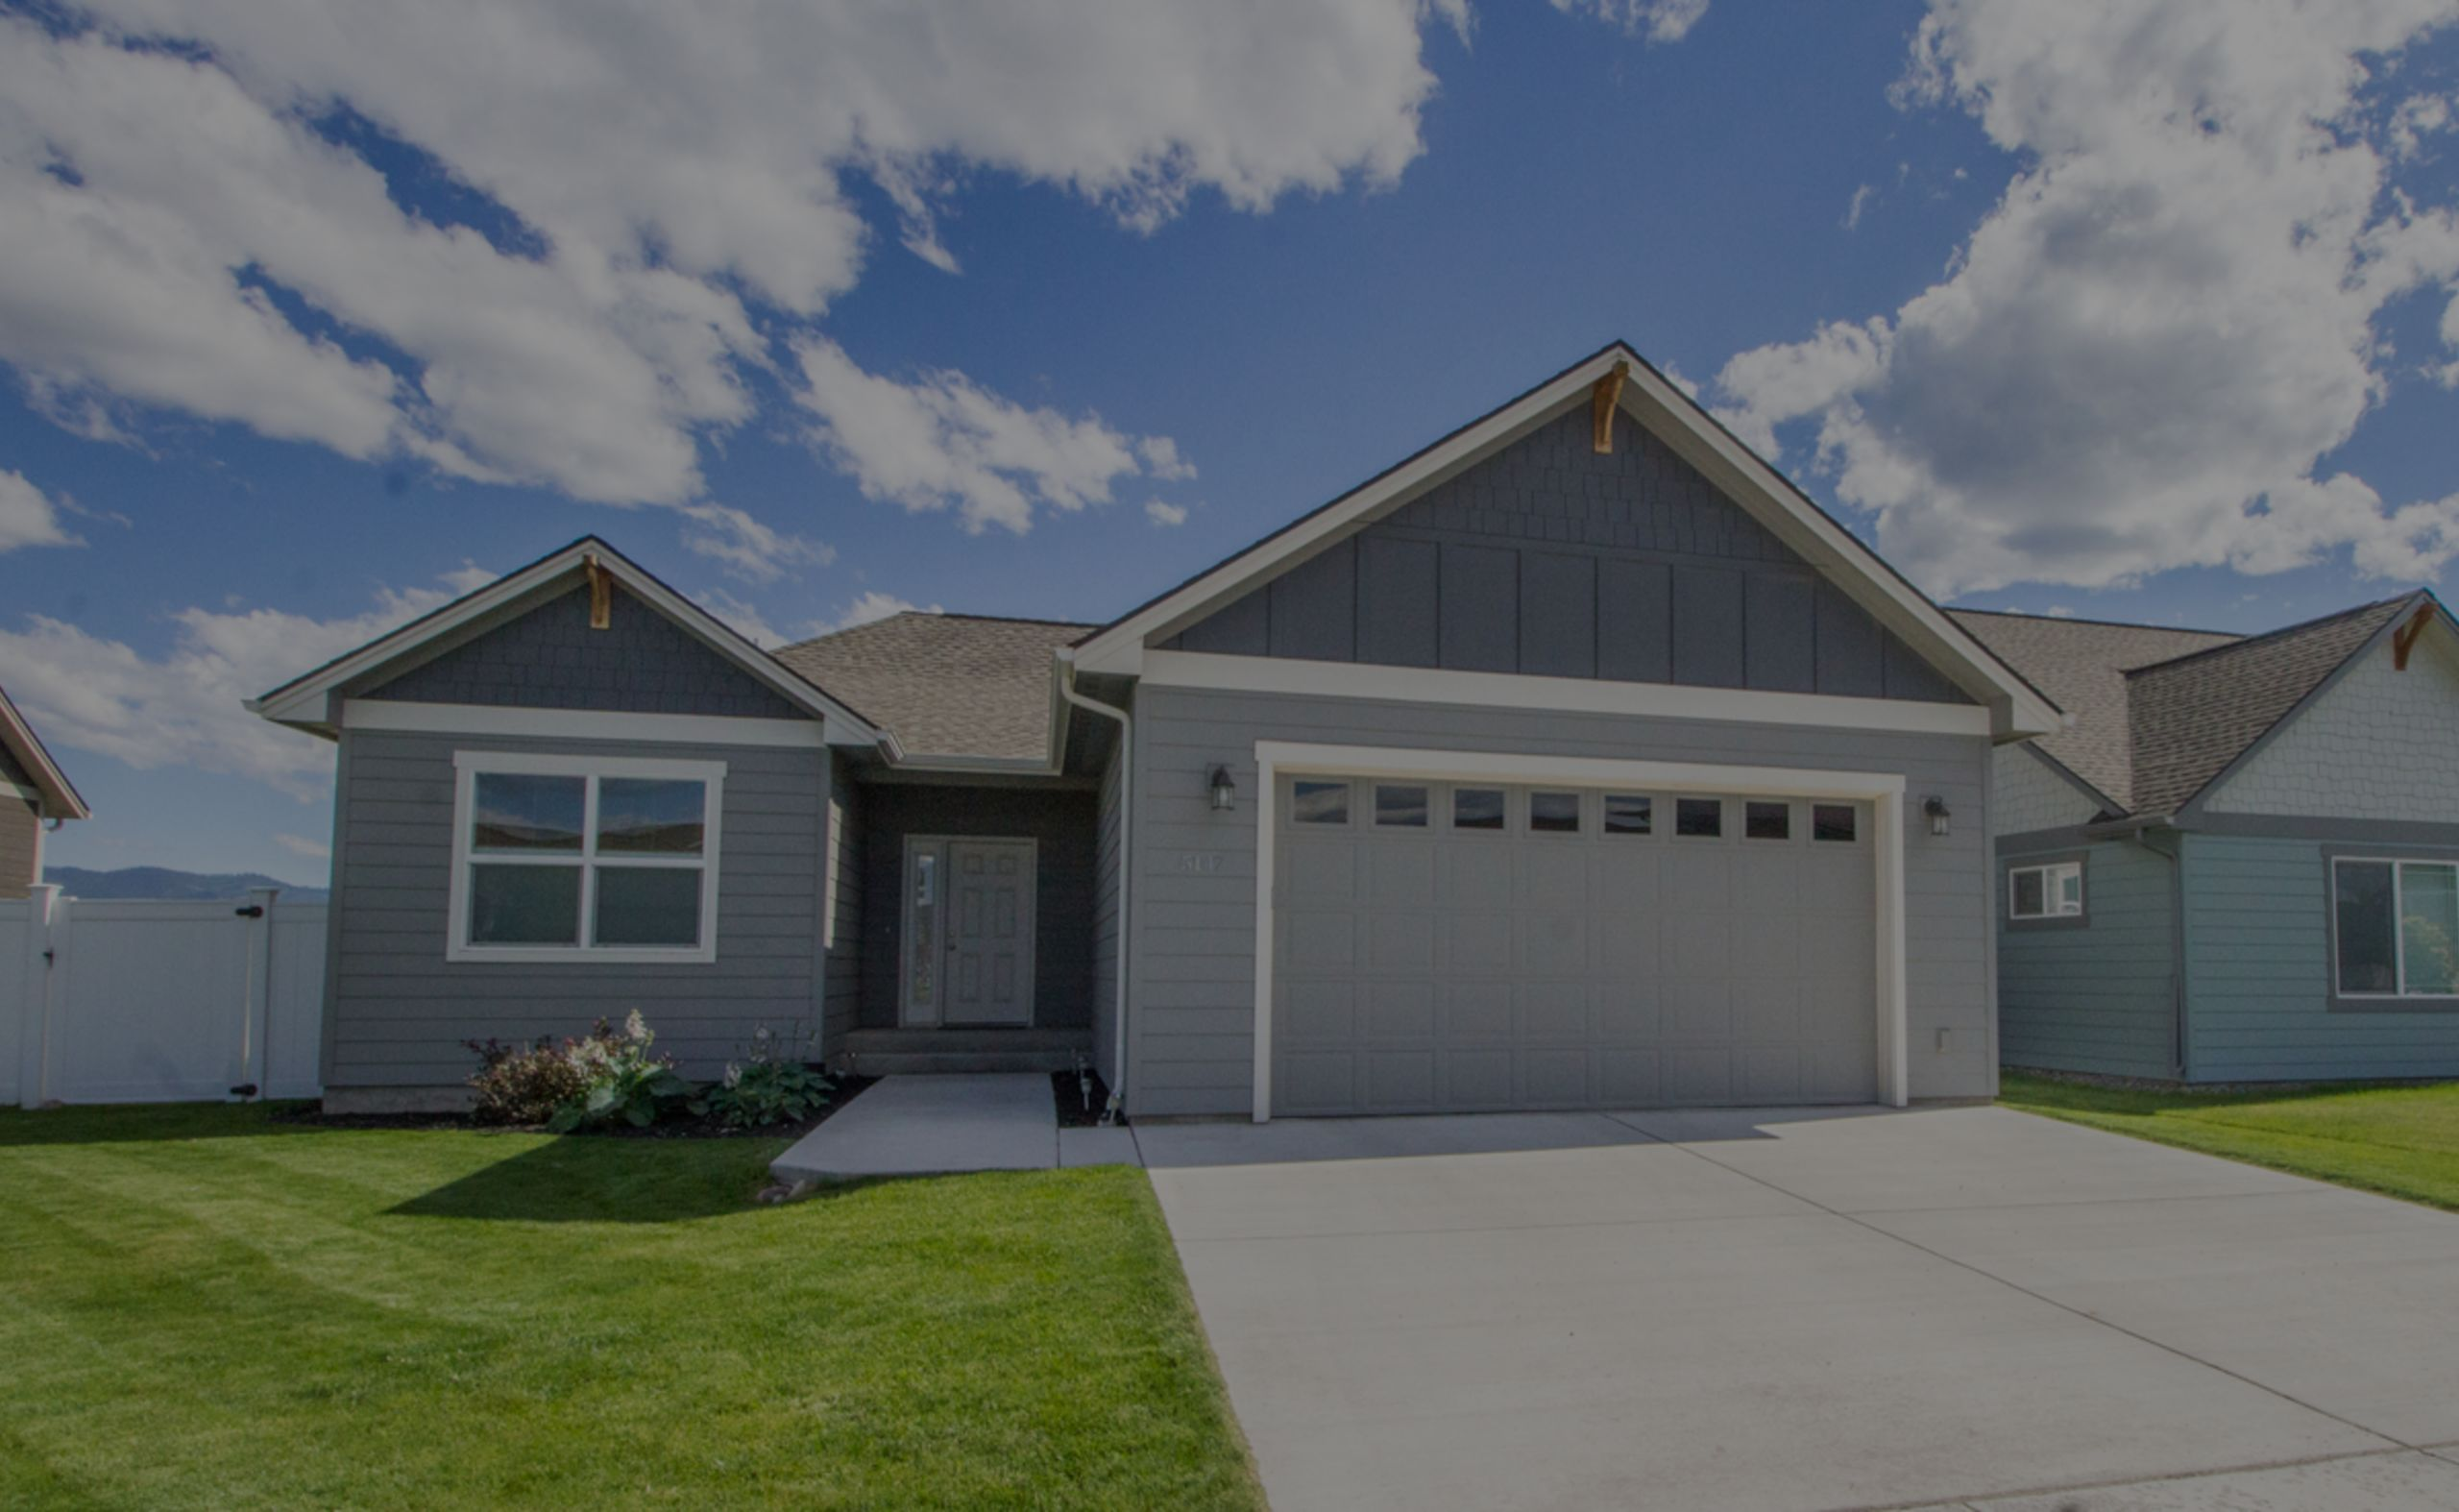 New Homes For Sale In Missoula, Montana